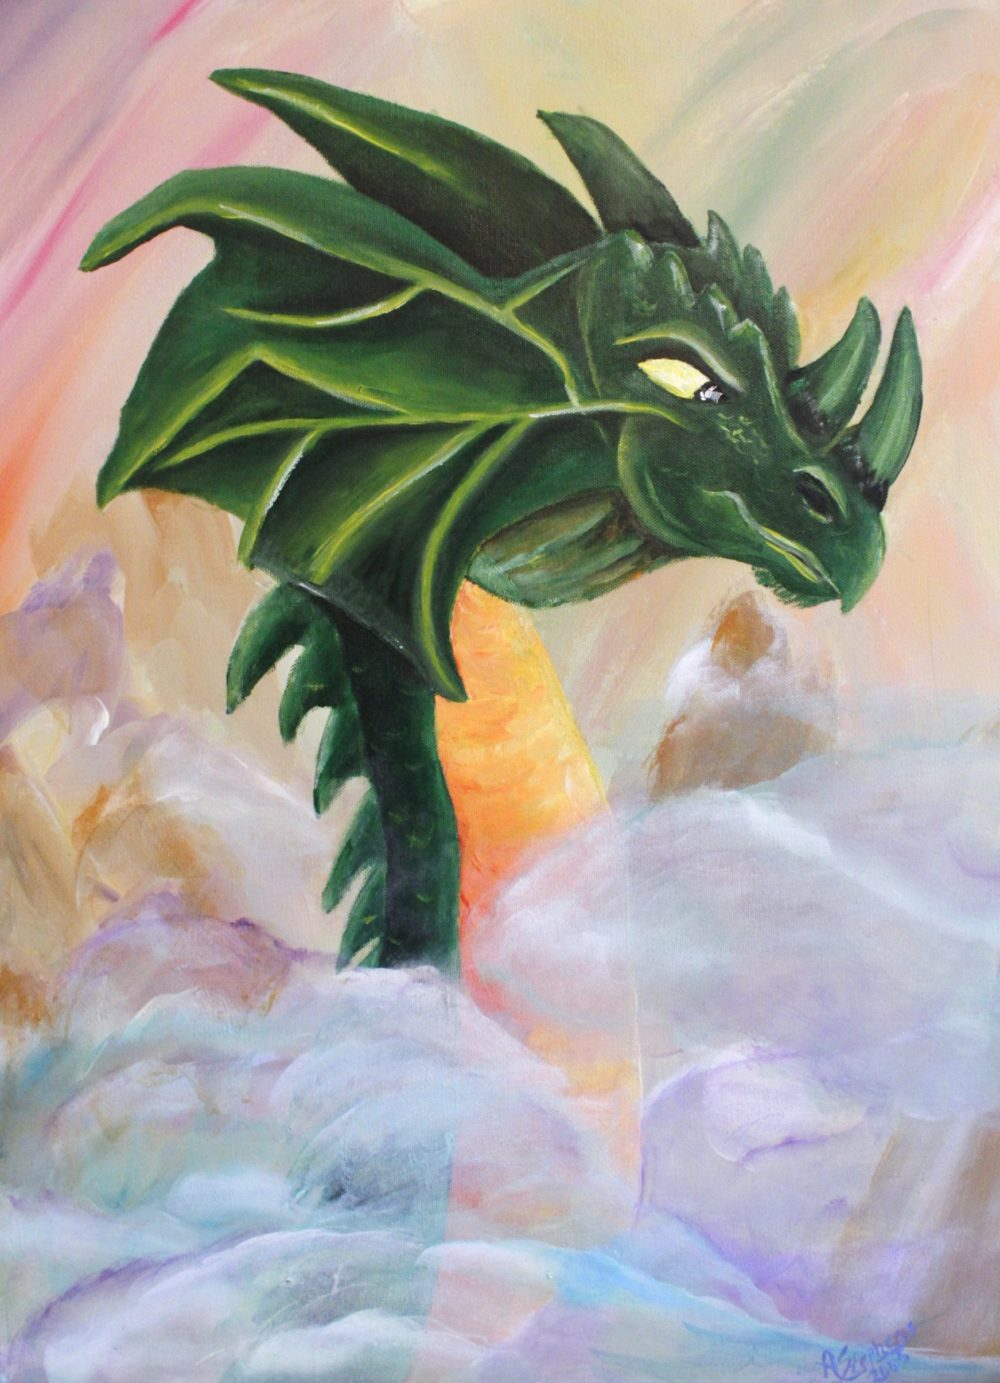 Painting of green dragon head poking through the clouds